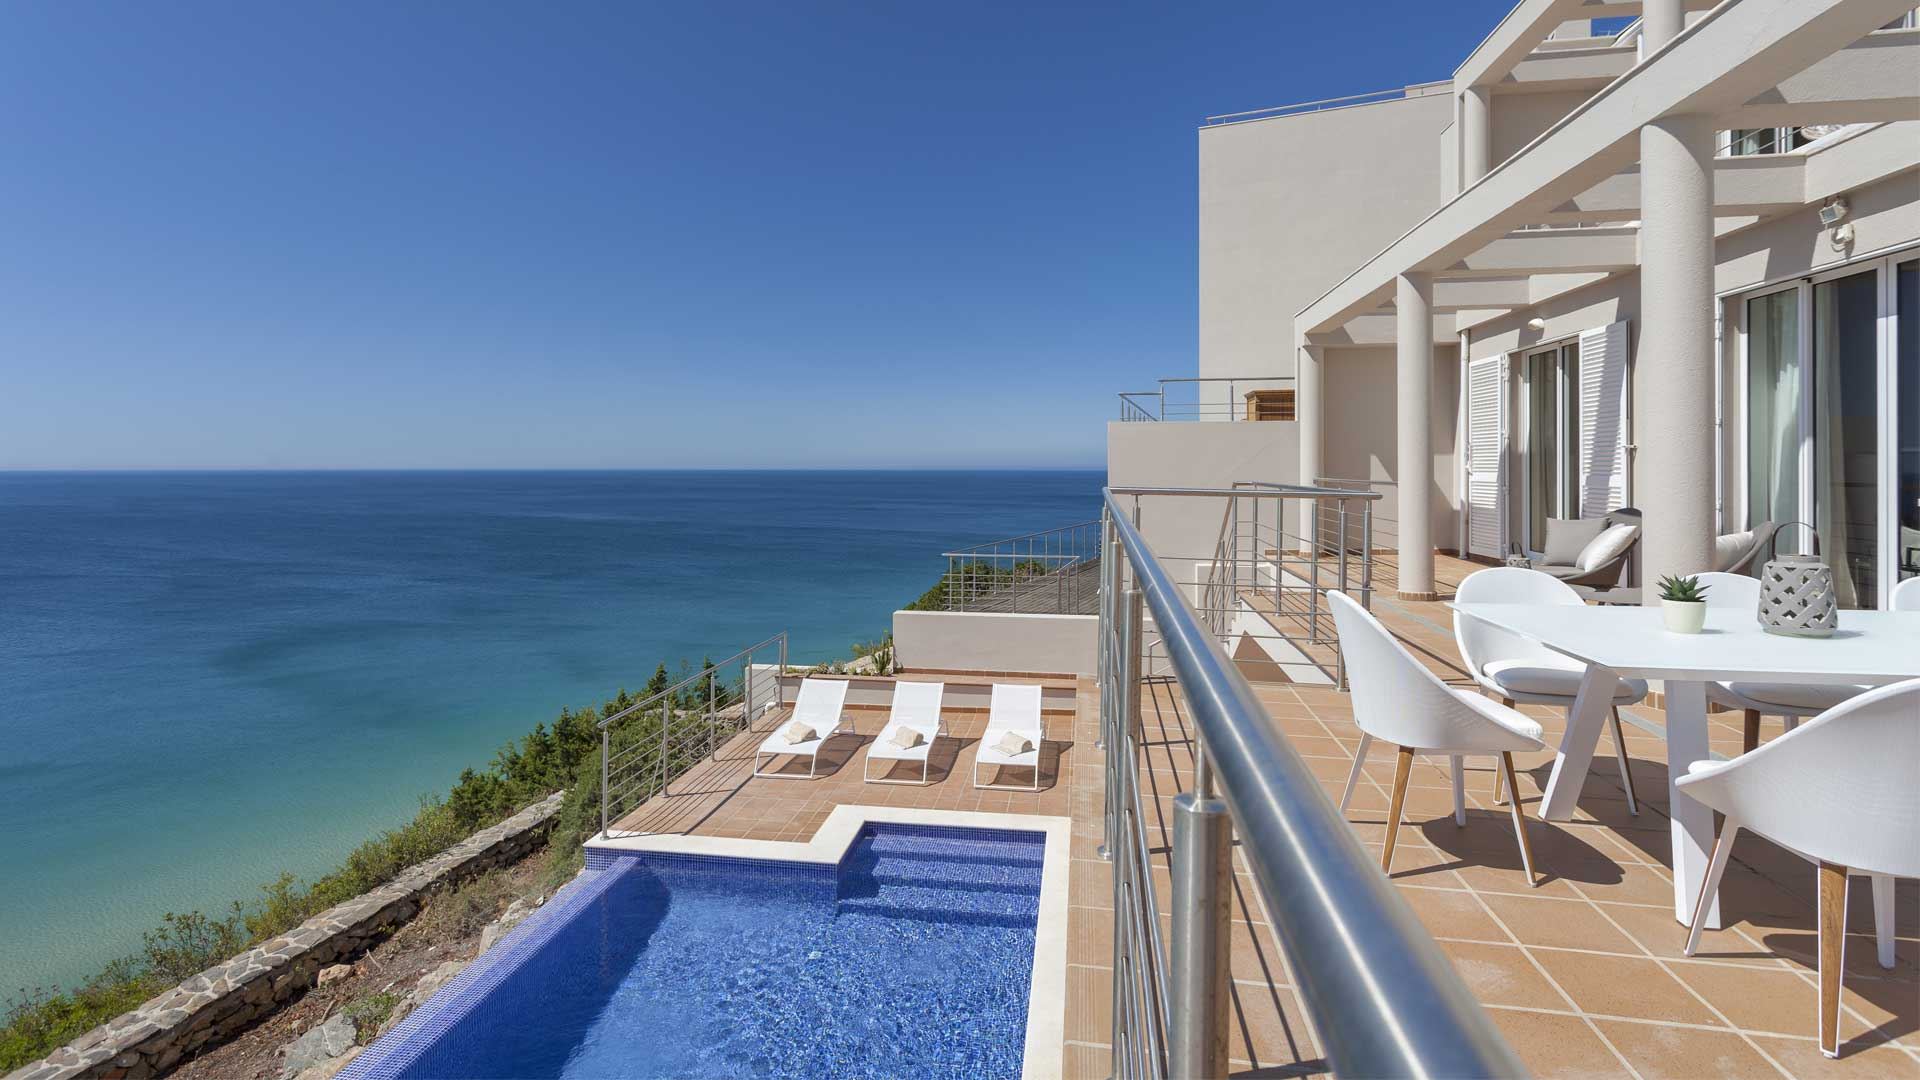 Villa Villa Salema Vista, Rental in Algarve